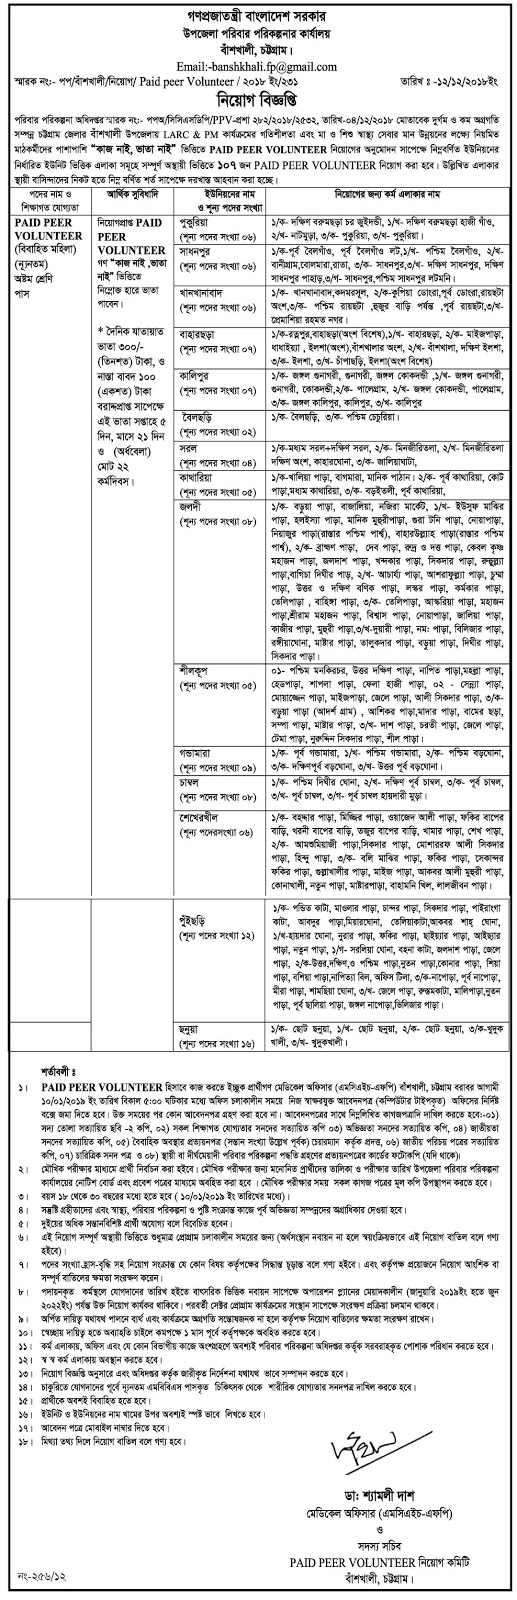 Banskhali Upazila Family Planning Paid Peer Vulanteer job circular 2018